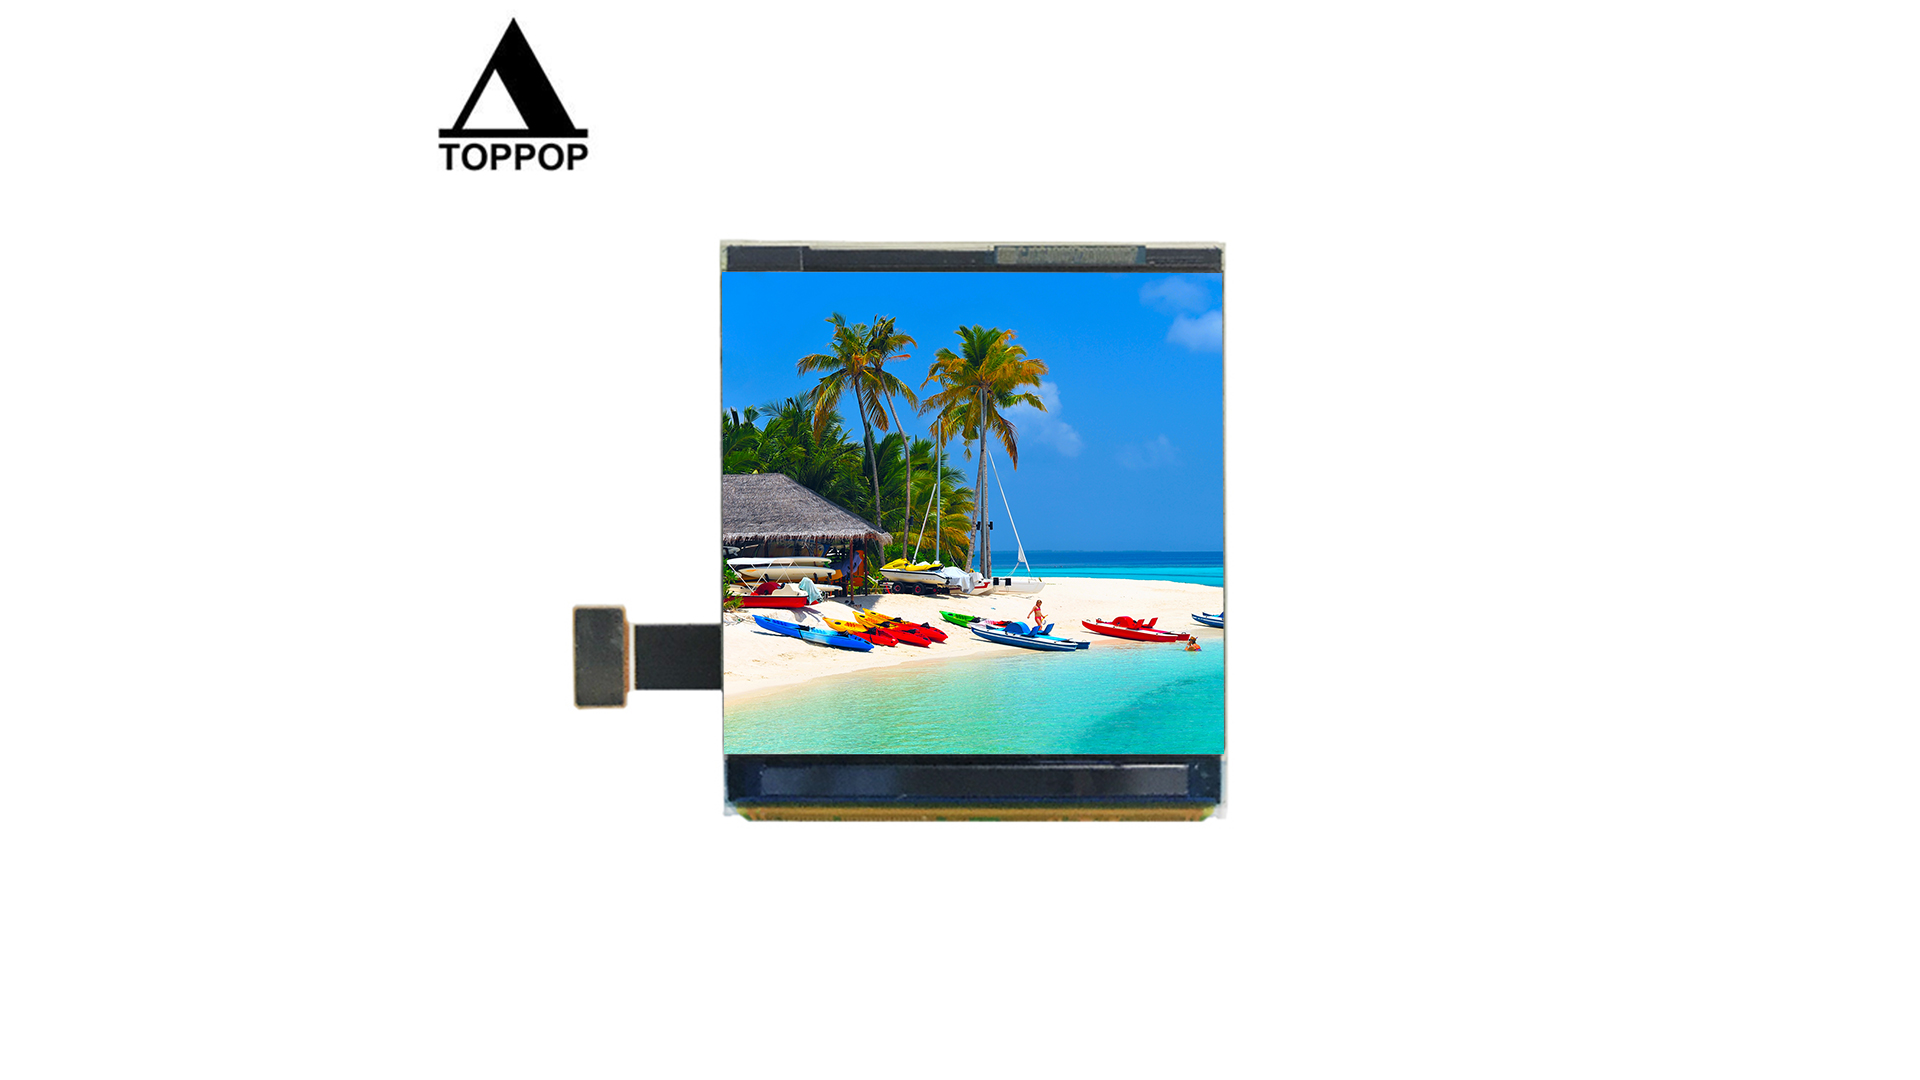 Original 1.63 inch 320*320 Square AMOLED lcd Display MIPI DSI to hdmi  IPS lcd screen Color OLED Screen Panel LCD TFT Module 20 Pin Flexible FPC 300cd toppoplcd